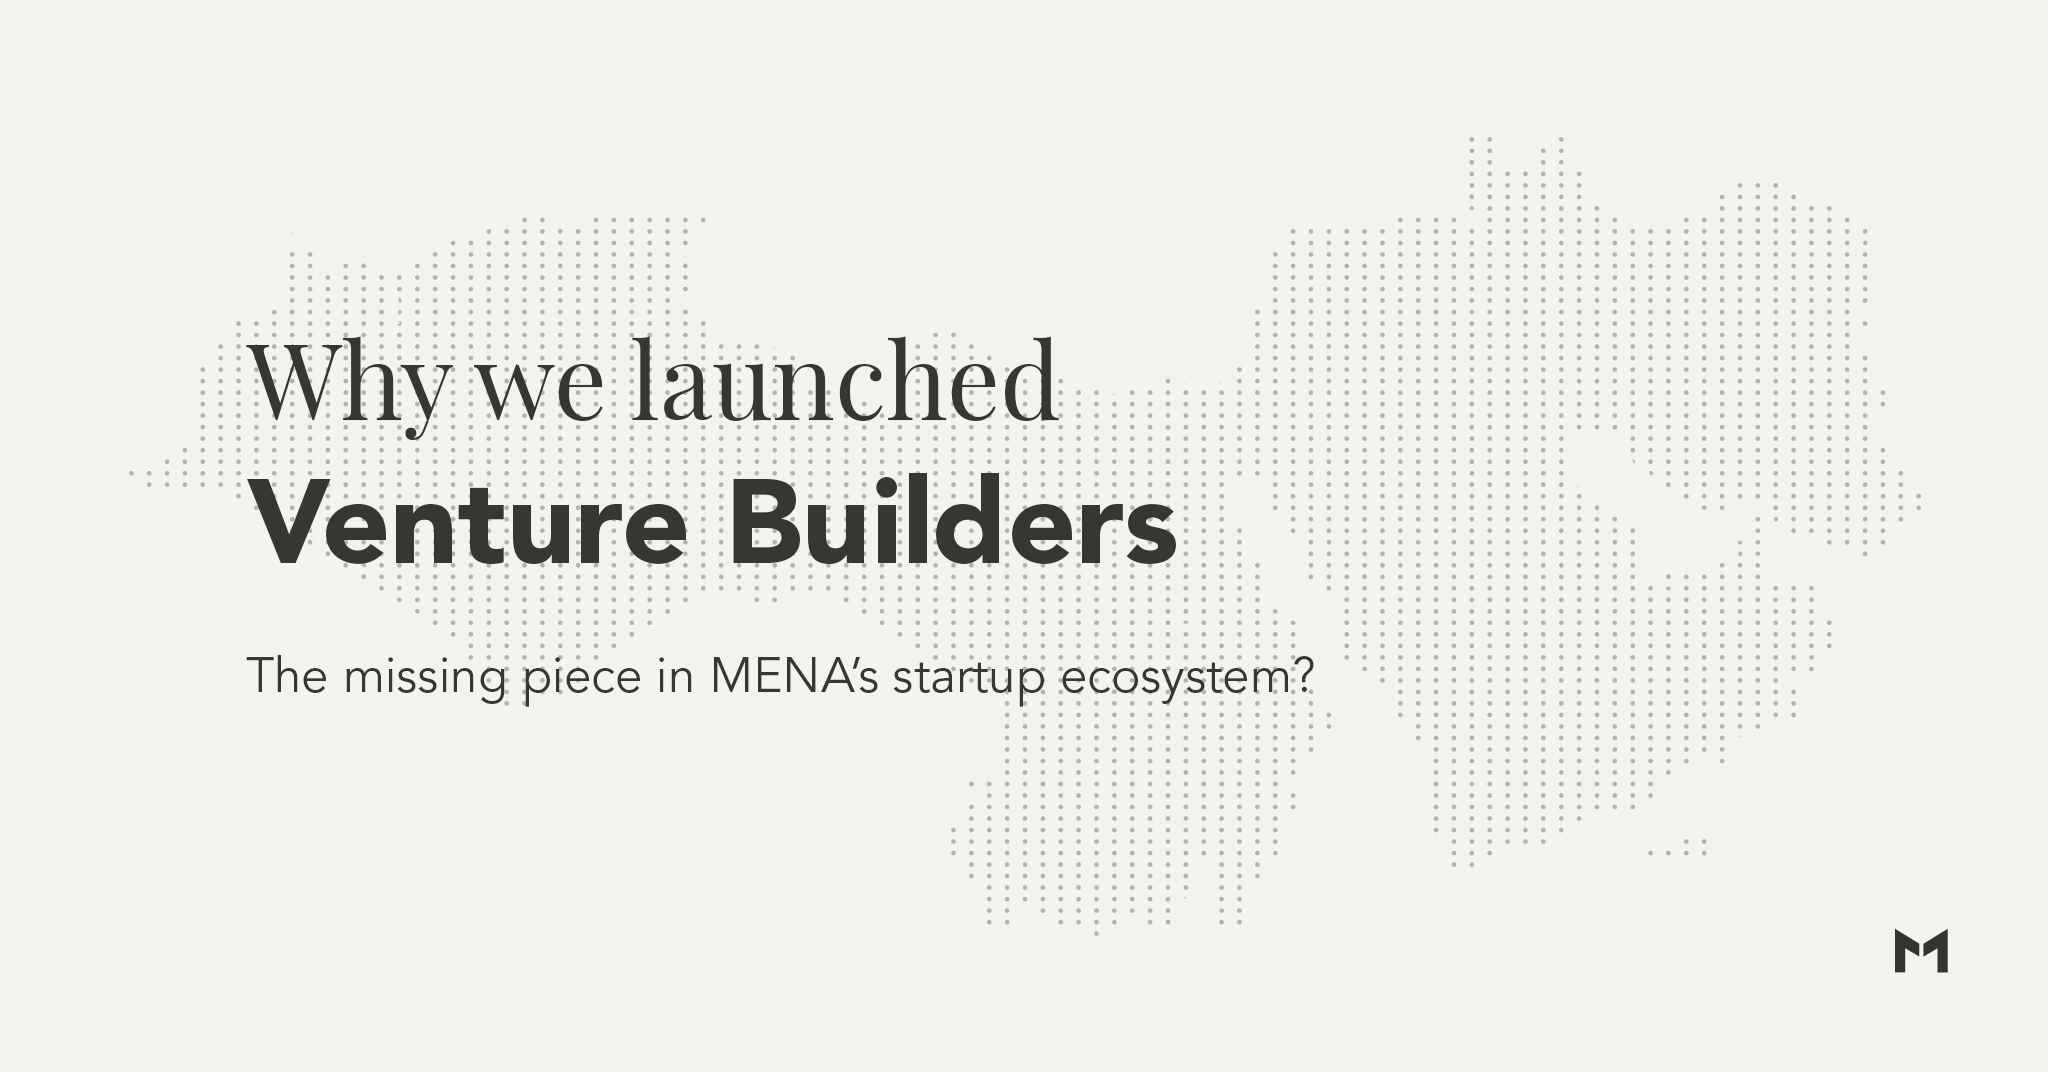 Why we launched venture builders in MENA